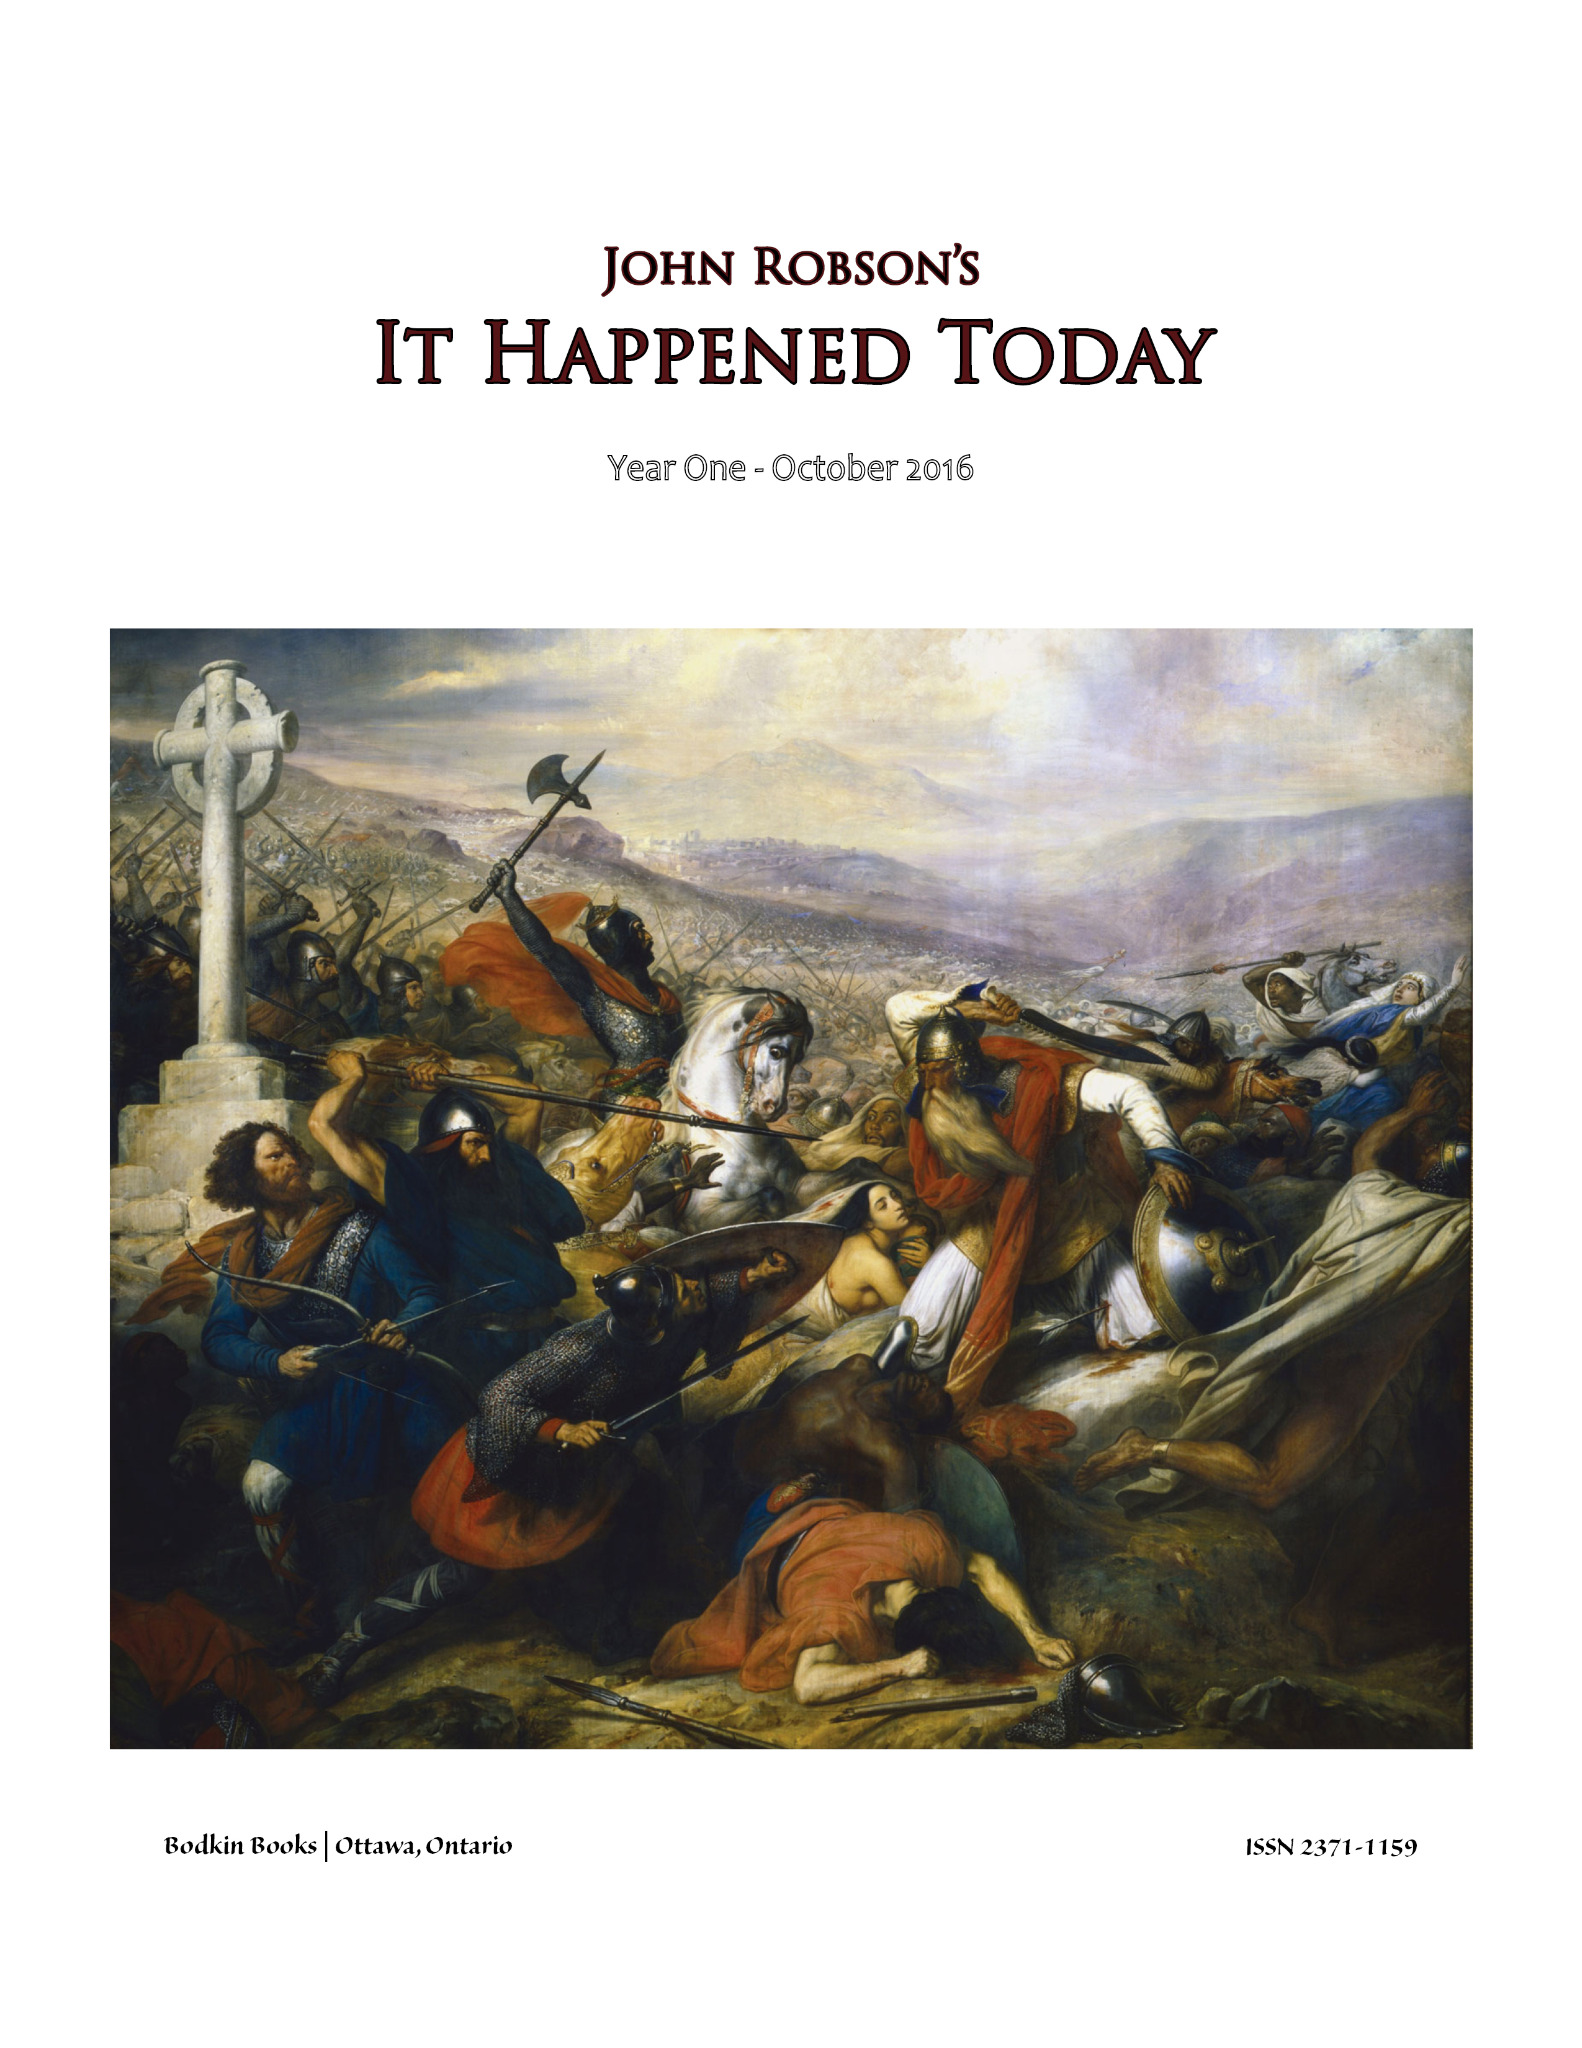 John Robson's It Happened Today - Year One - October